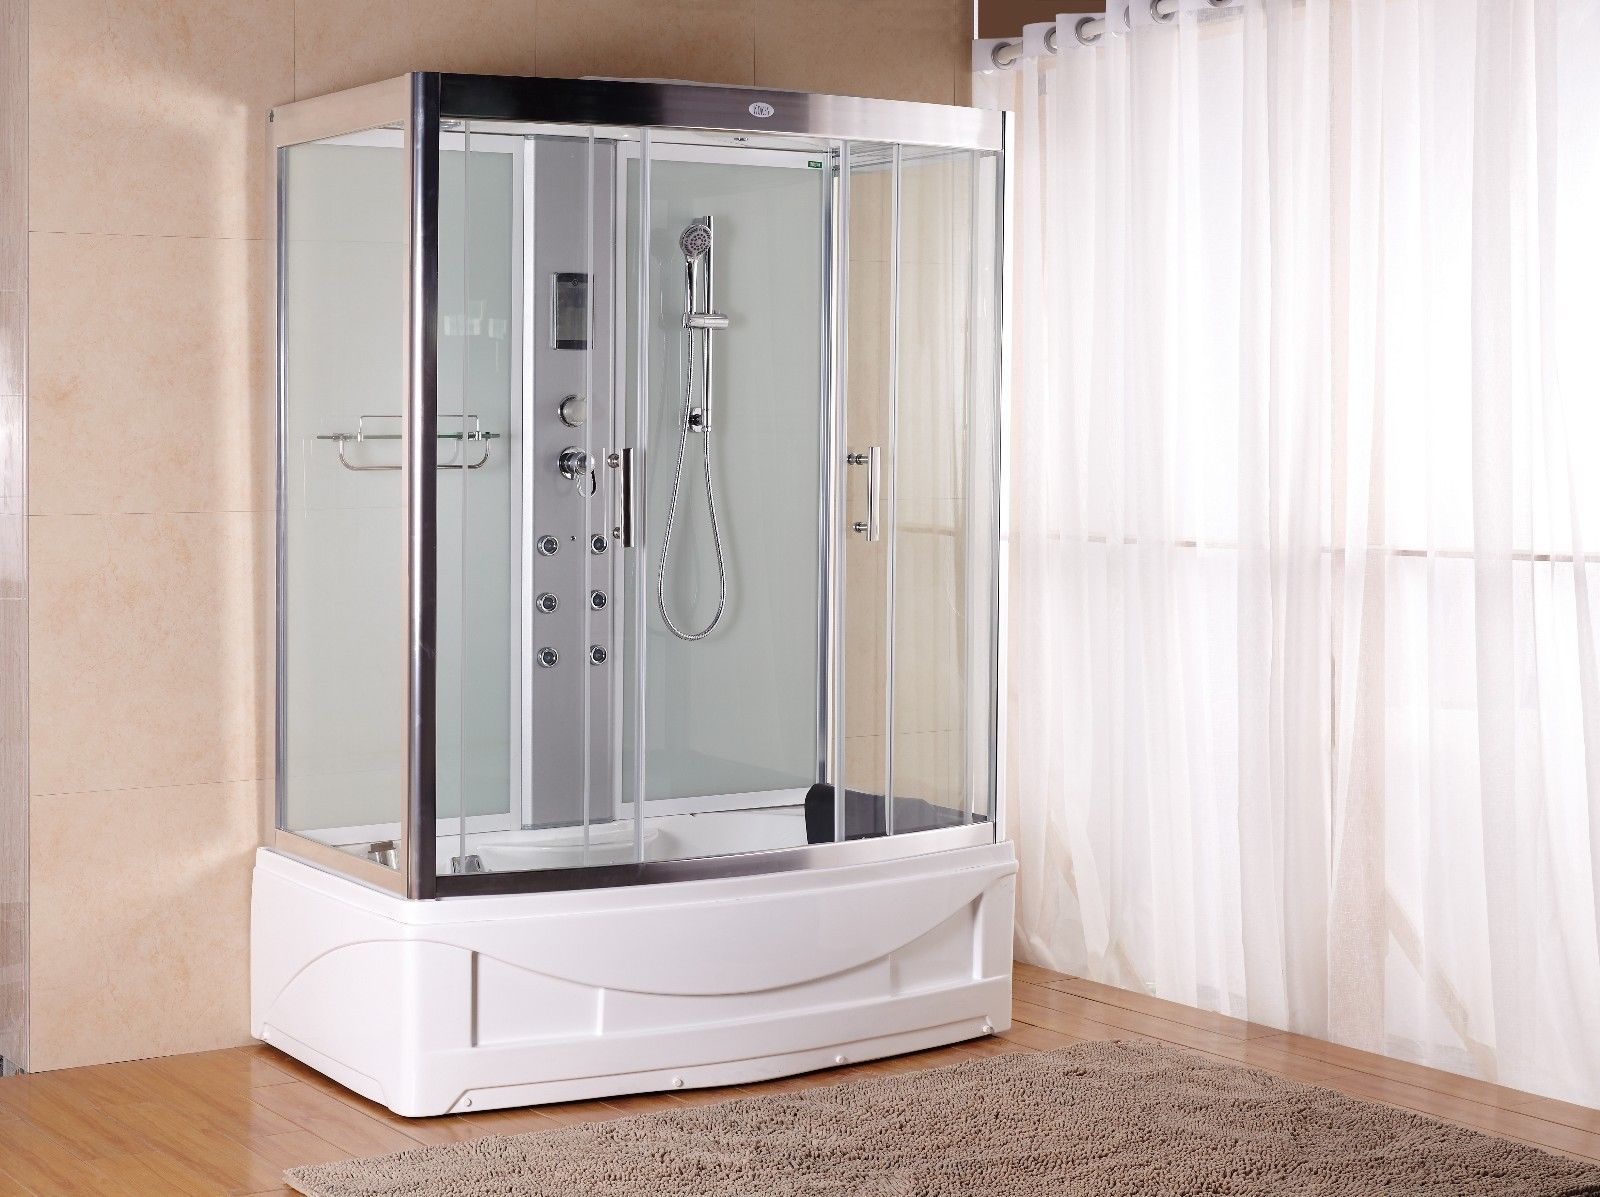 Douche A Jet Massage 1001 Now Luxury Steam Shower Enclosure 9001 Pure White Hydro